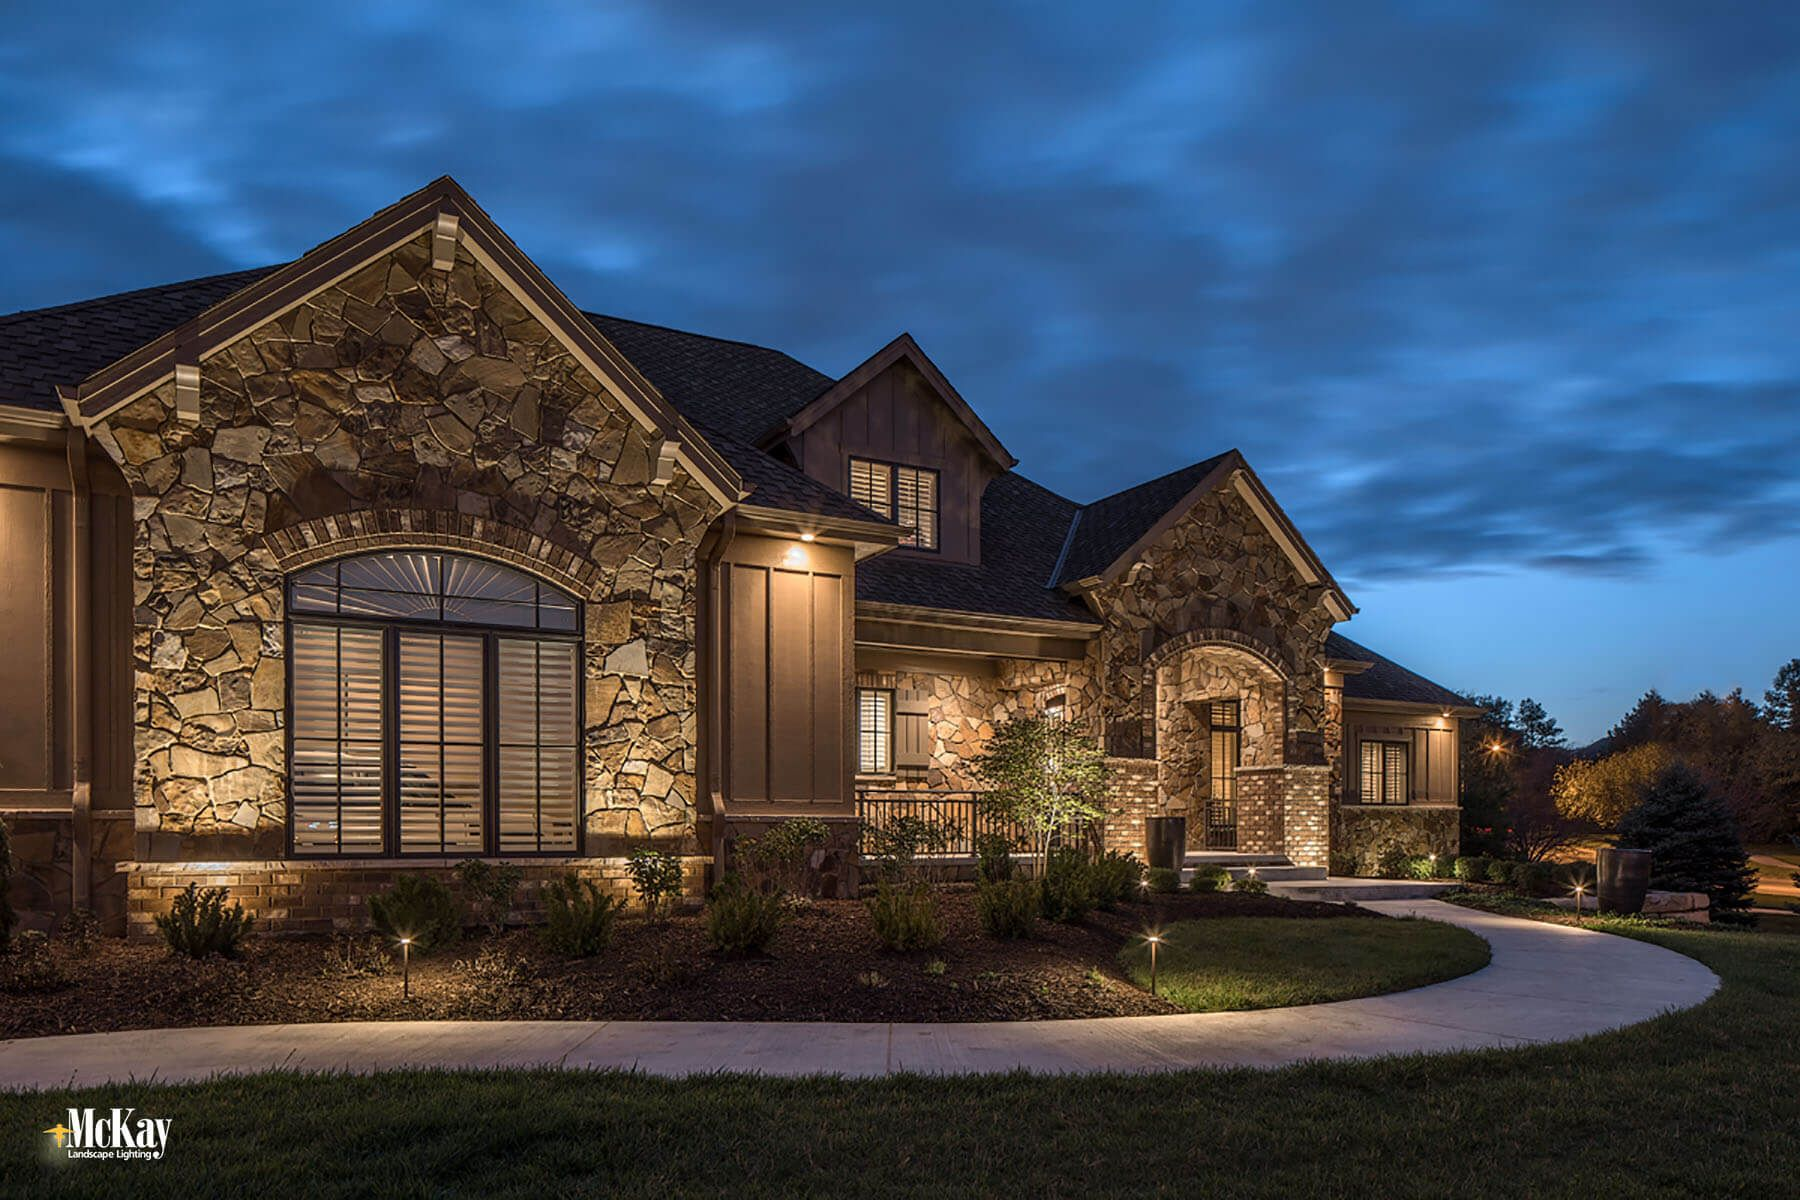 Project spotlight elegant outdoor security lighting design residential security lighting omaha nebraska learn more about this outdoor security lighting design by mckay mozeypictures